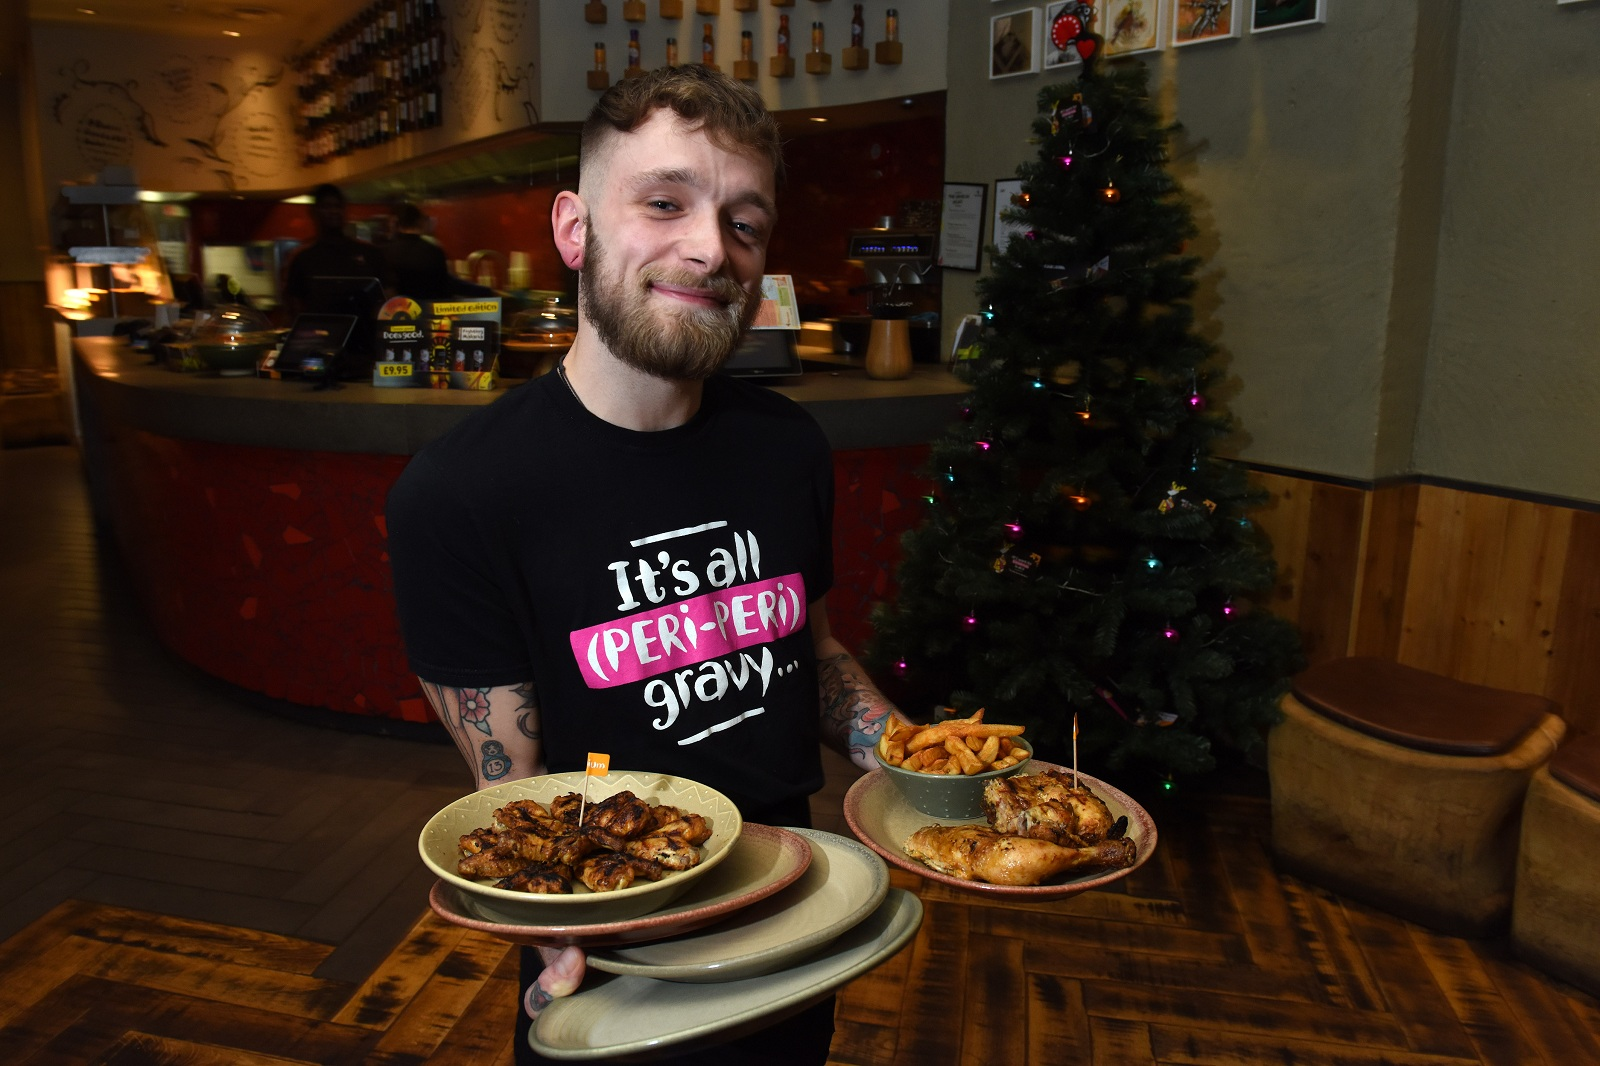 One-handed English young man excels as waiter